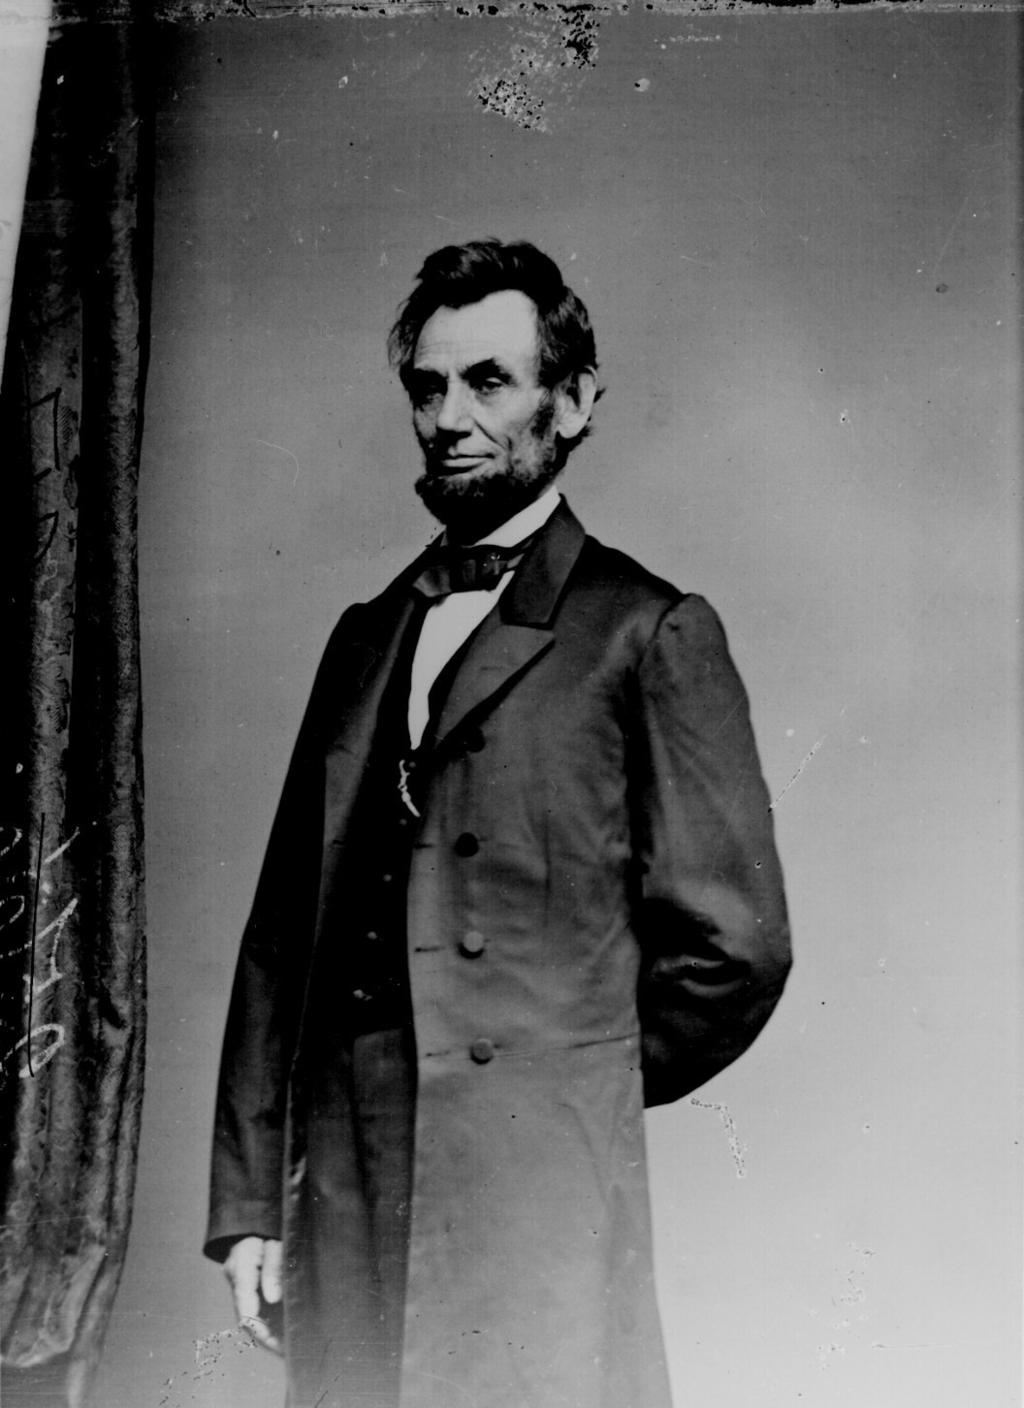 Lincoln is said to have received a letter from a young girl telling a tale of how here siblings would surely vote